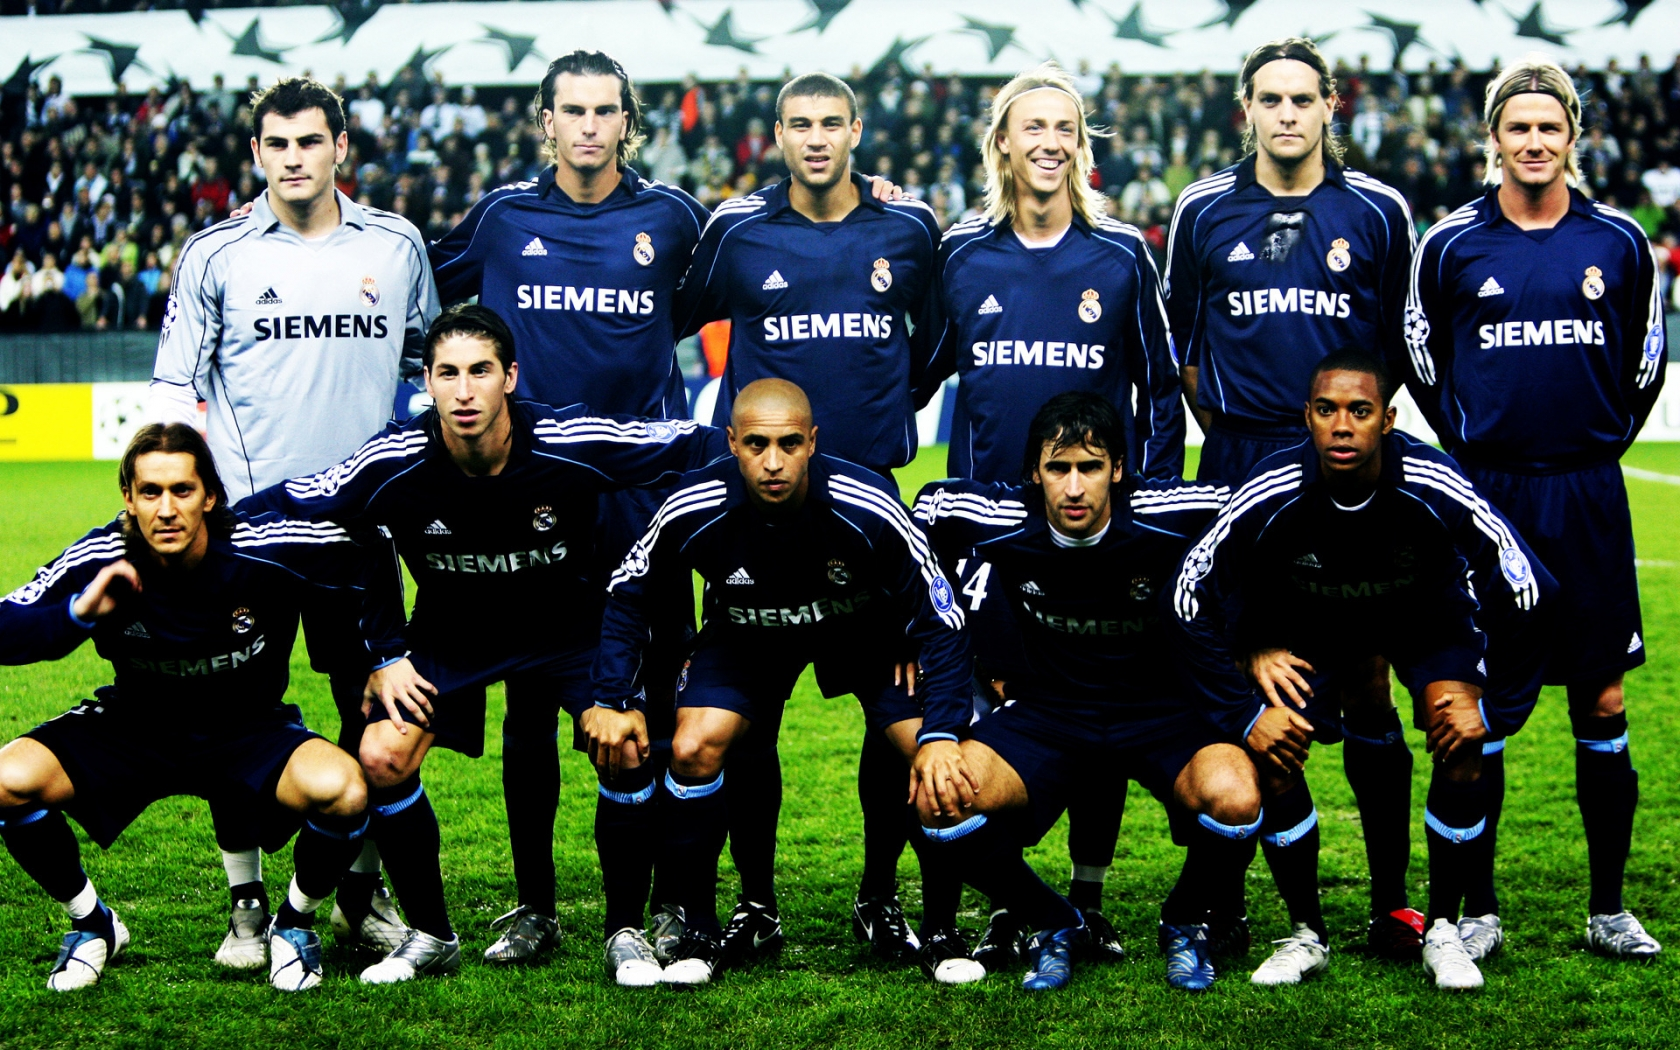 Real Madrid Team for 1680 x 1050 widescreen resolution